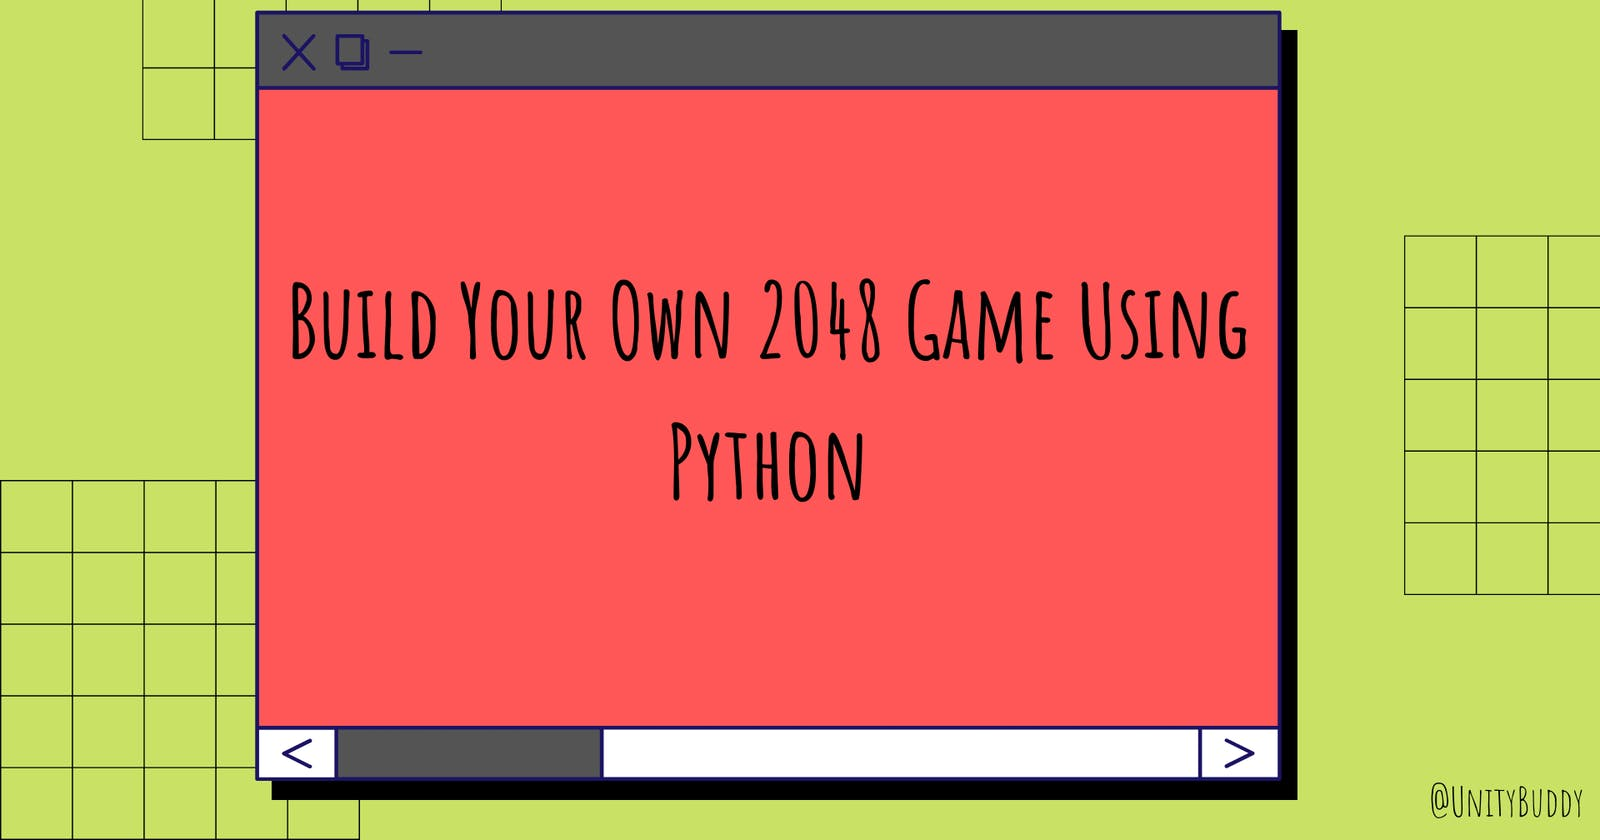 Build Your Own 2048 Game Using Python